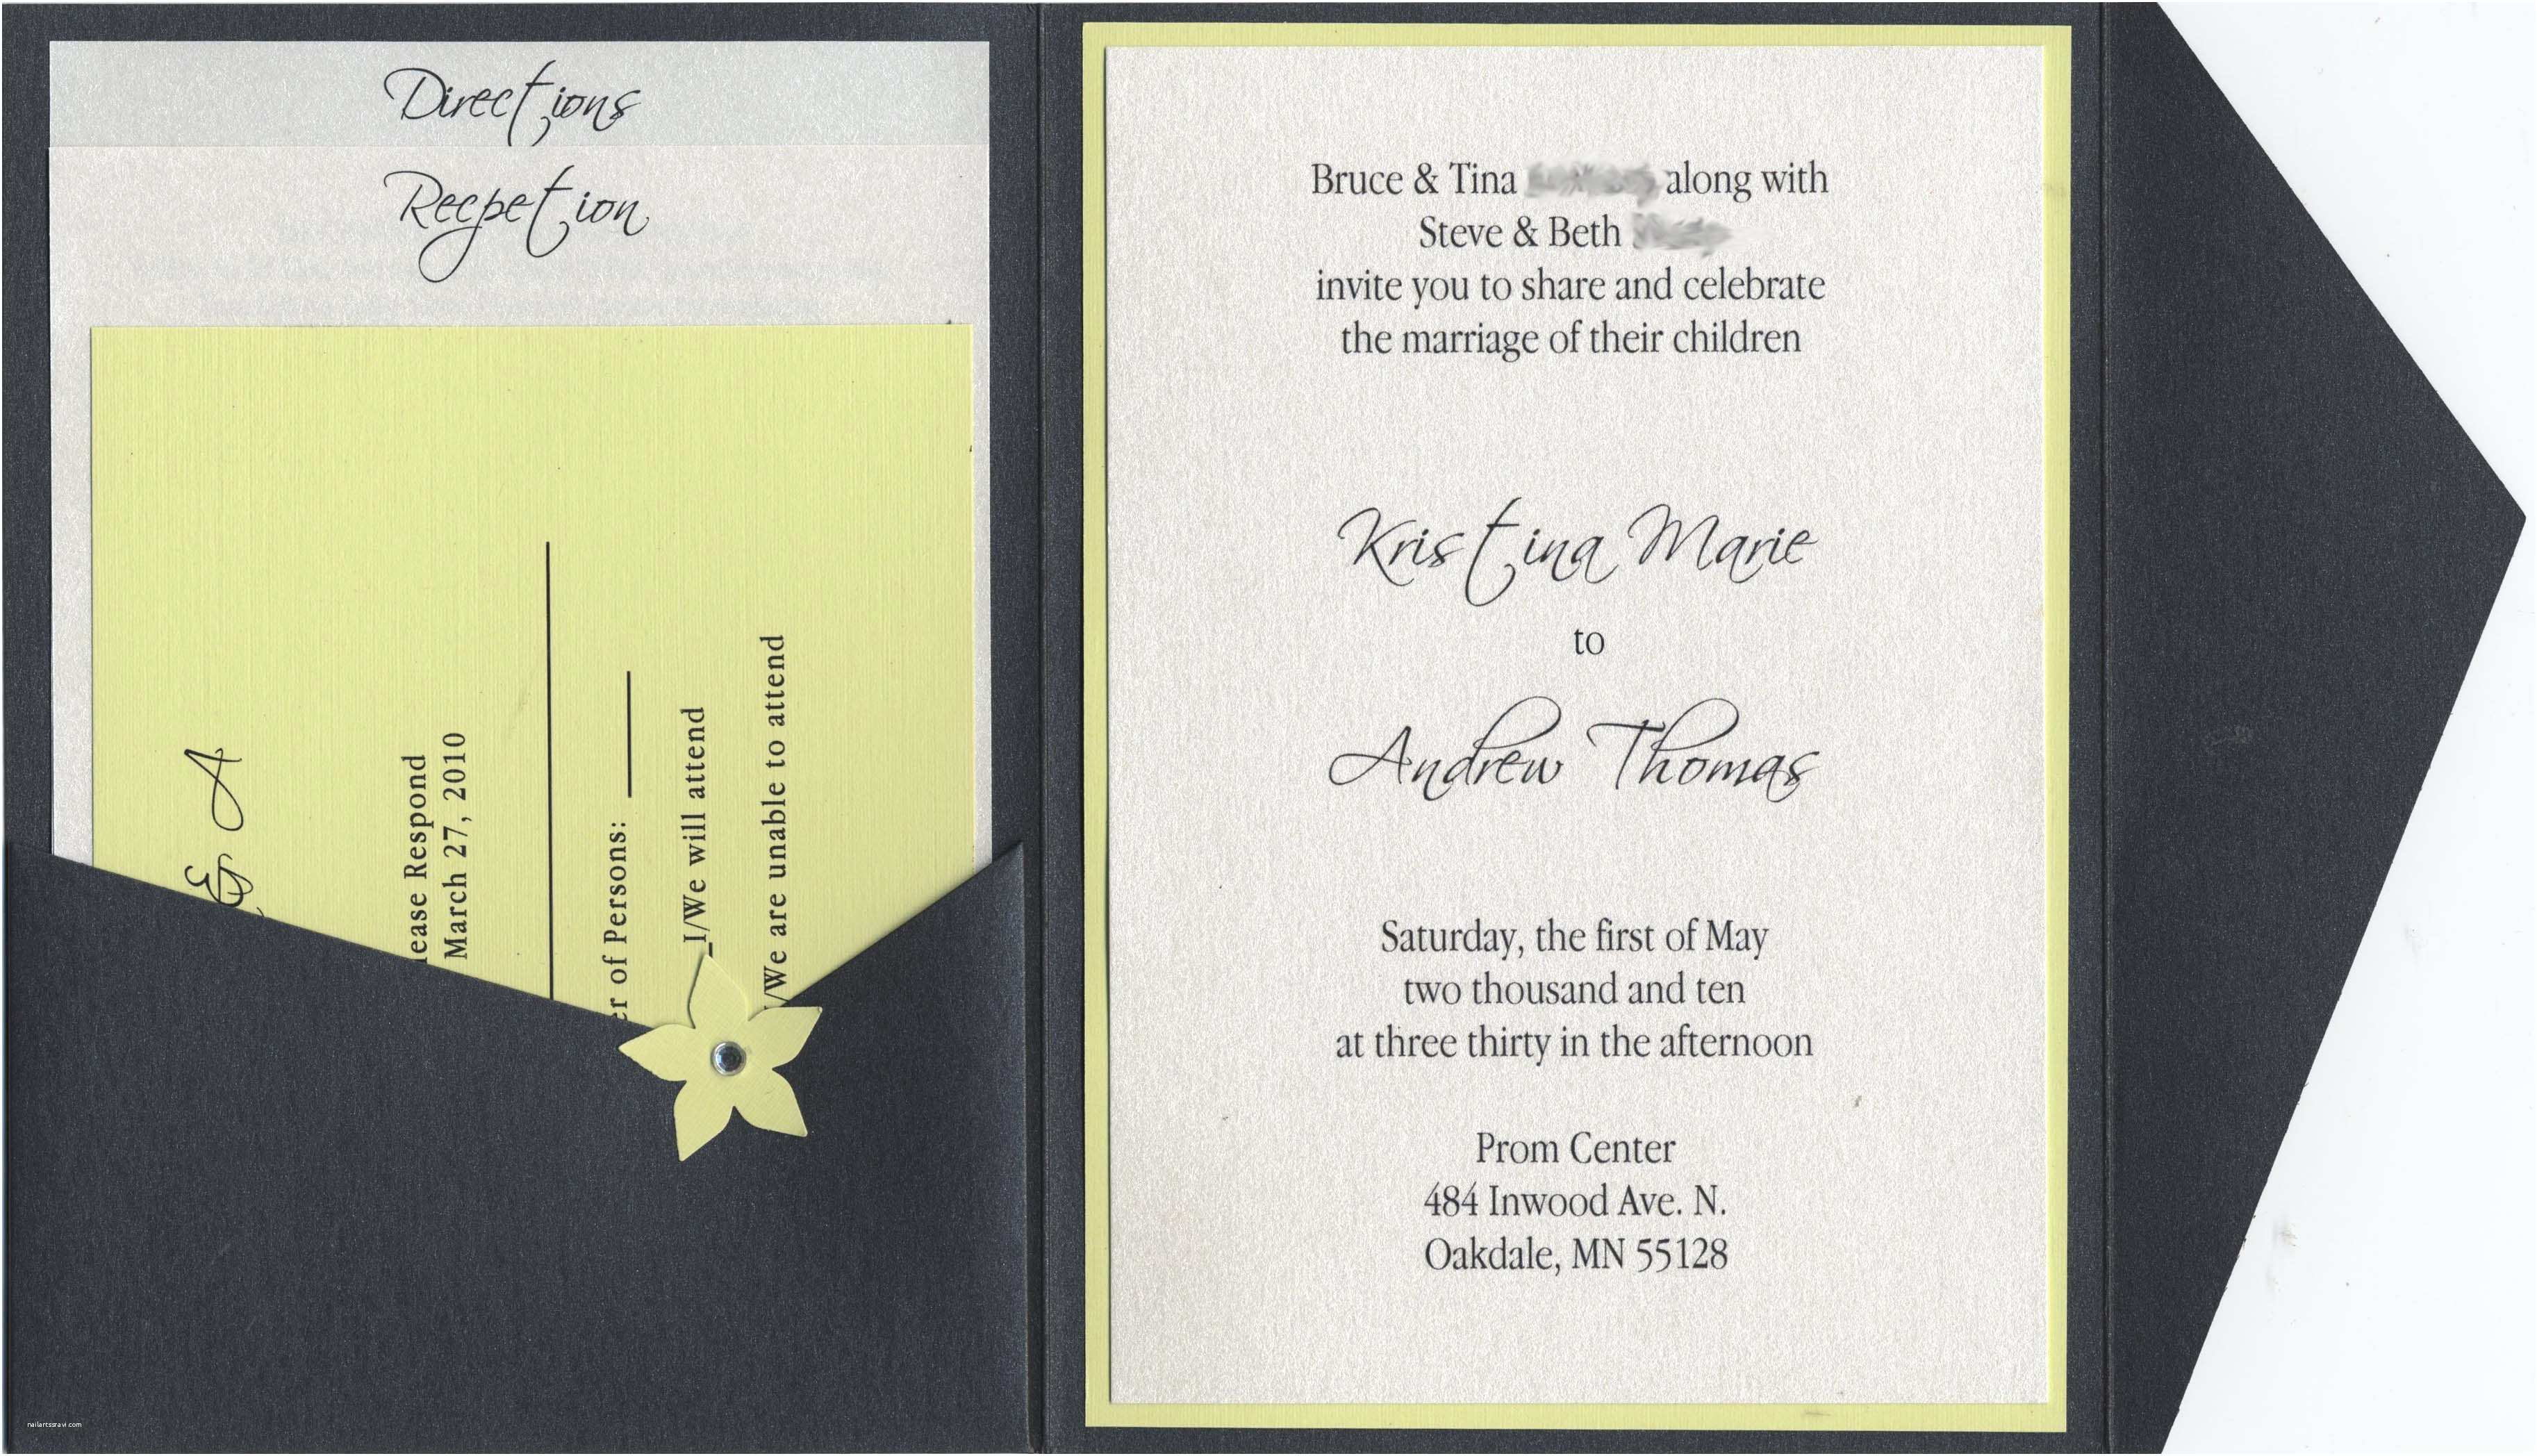 How To Print Out Wedding Invitations Cards Ideas With How To Make Wedding Invitations At